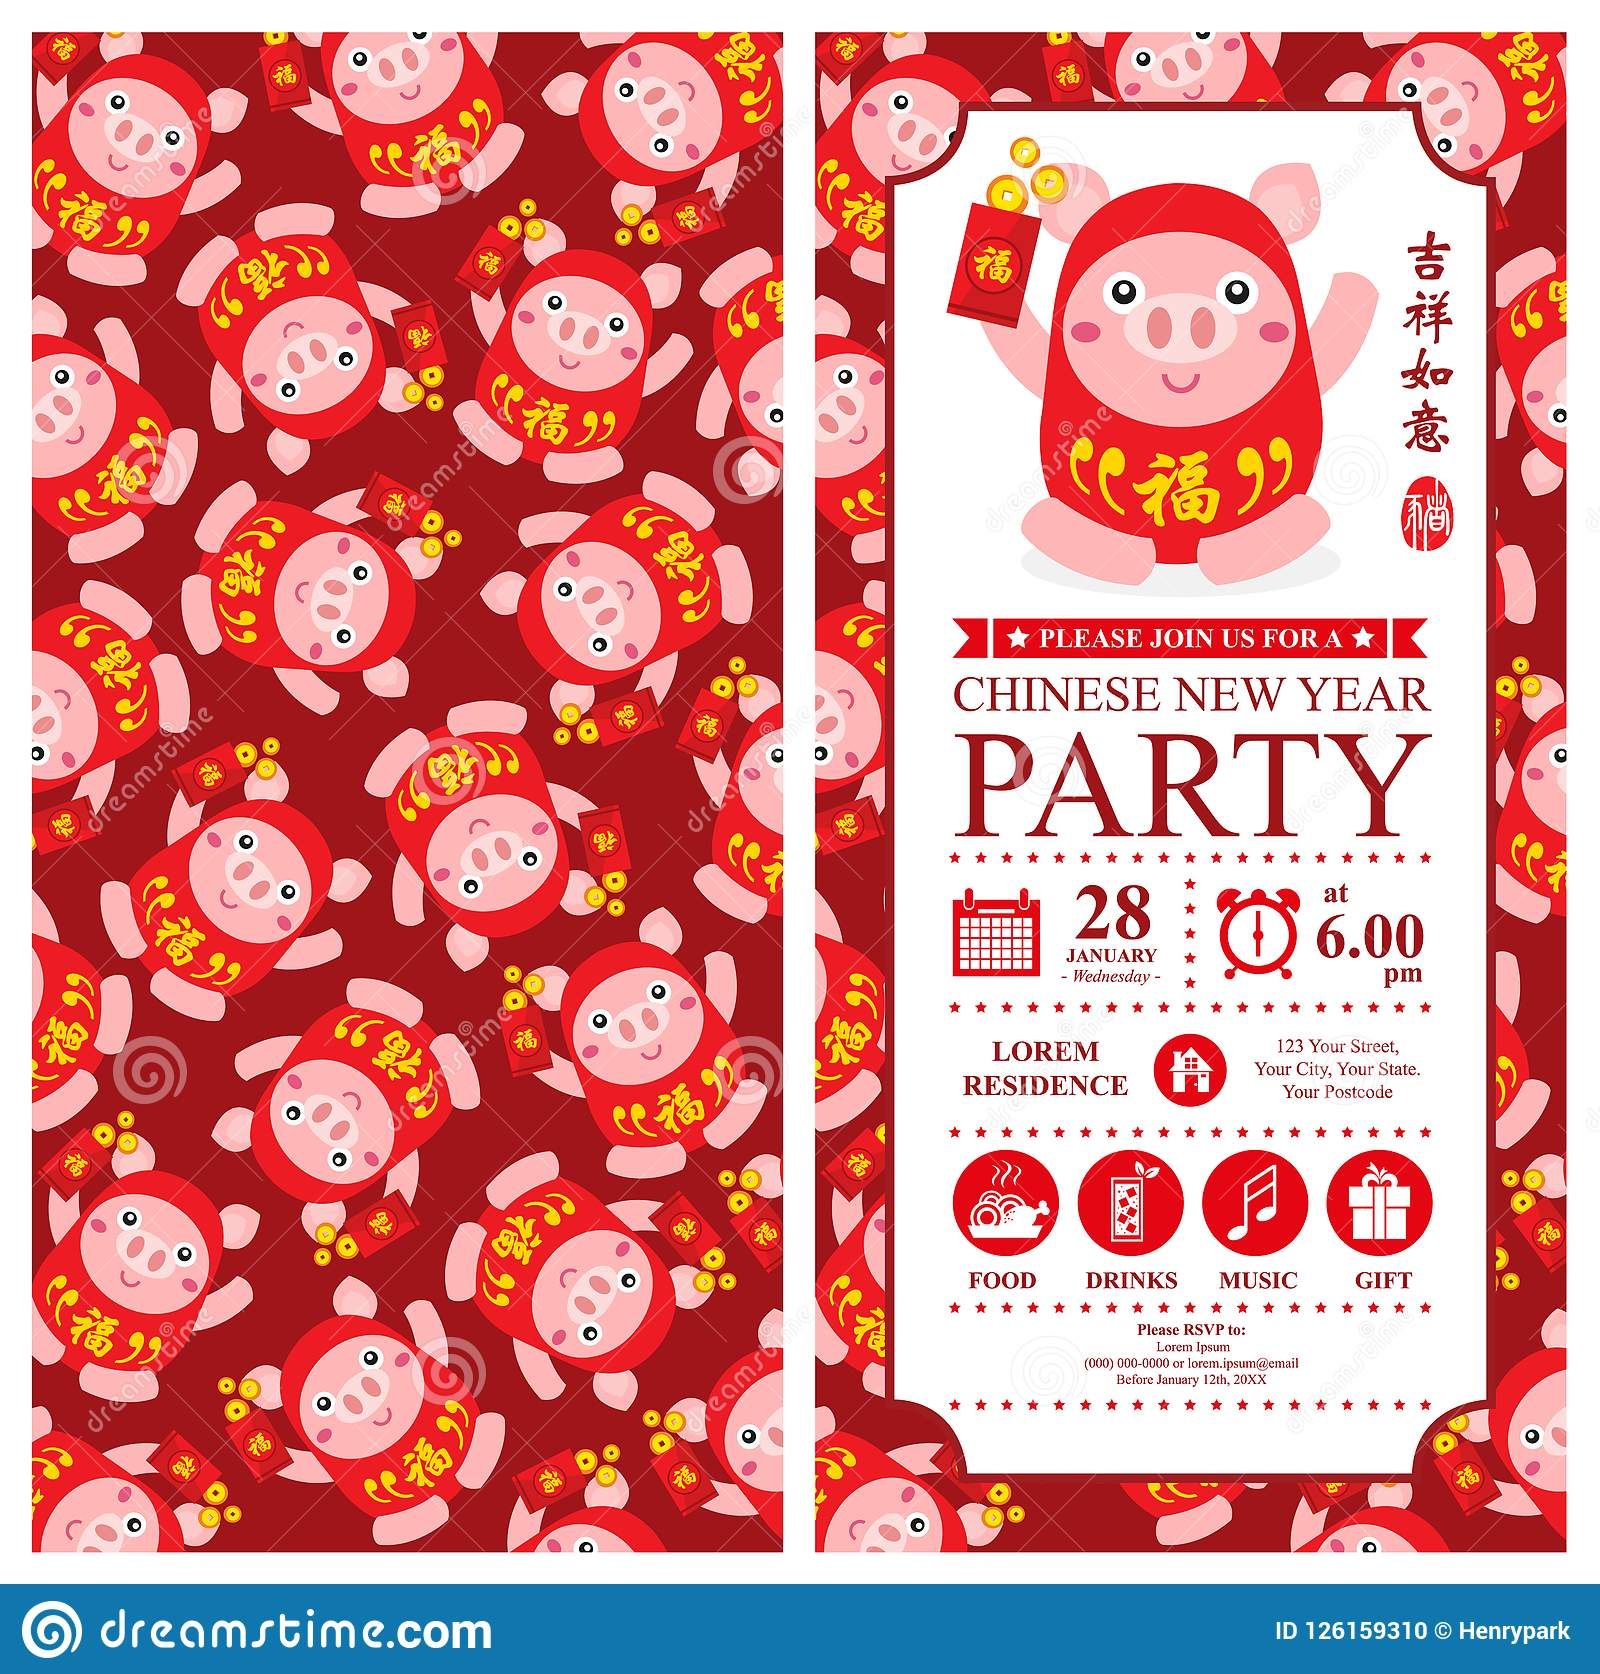 chinese new year invitation celebrate year of pig